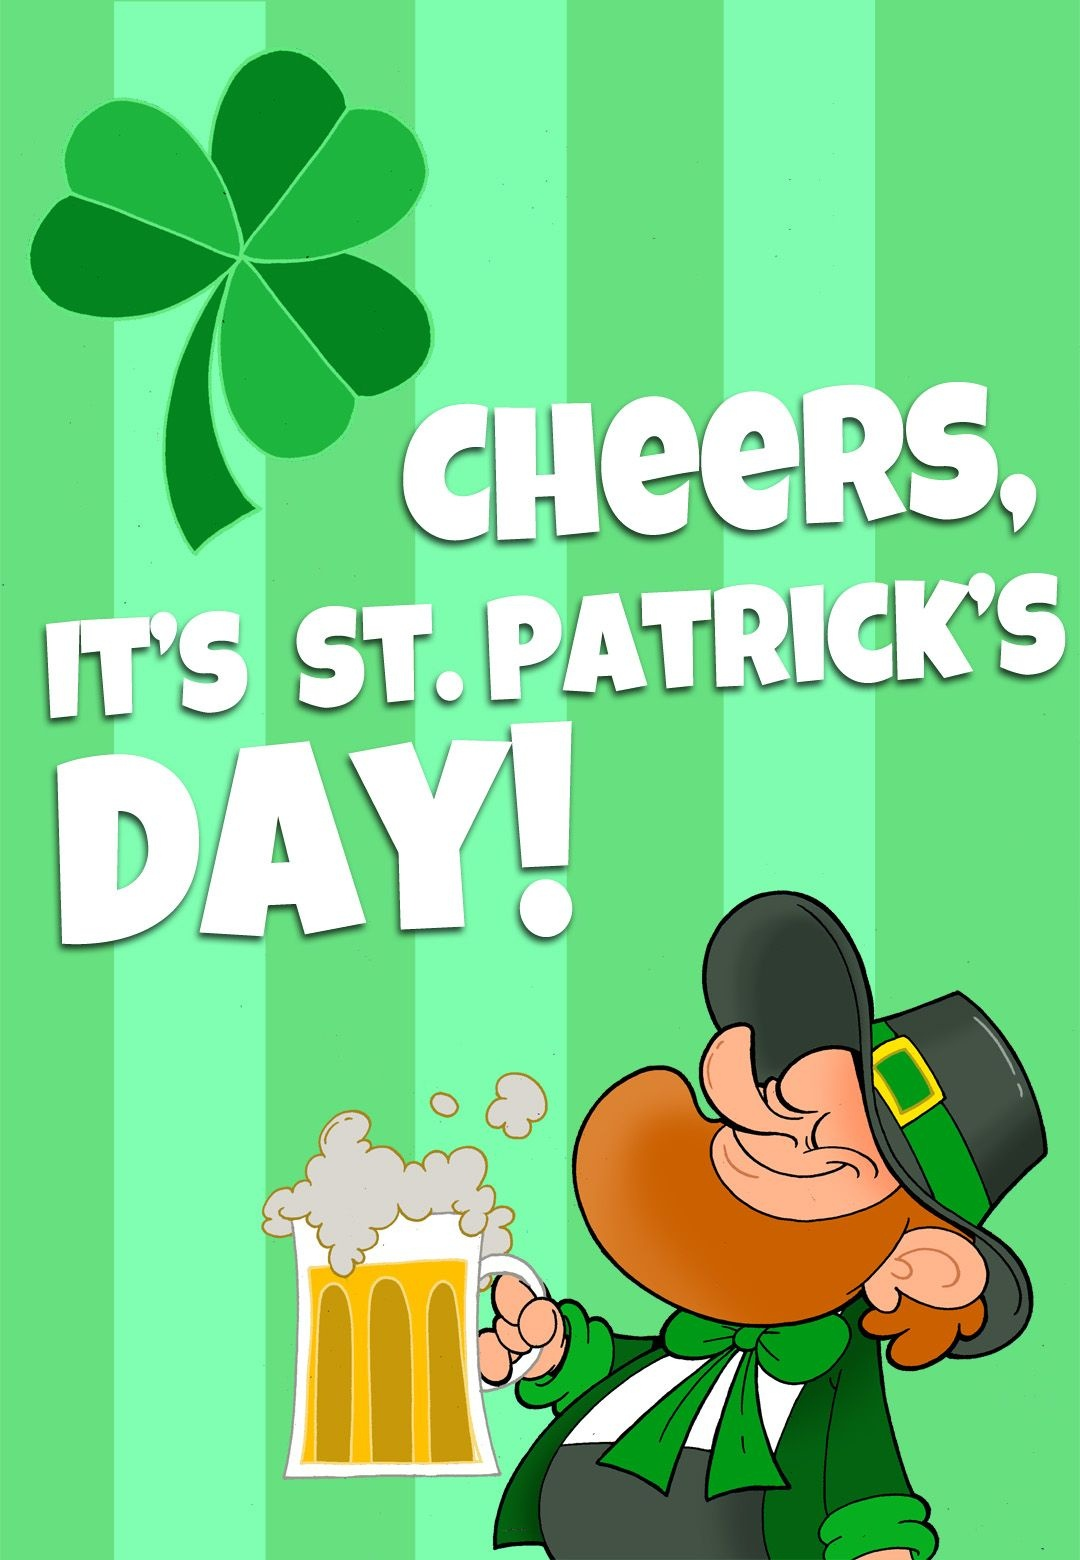 Free Printable 'its St Patricks Day' Greeting Card | Printable St - Free Printable St Patrick's Day Greeting Cards